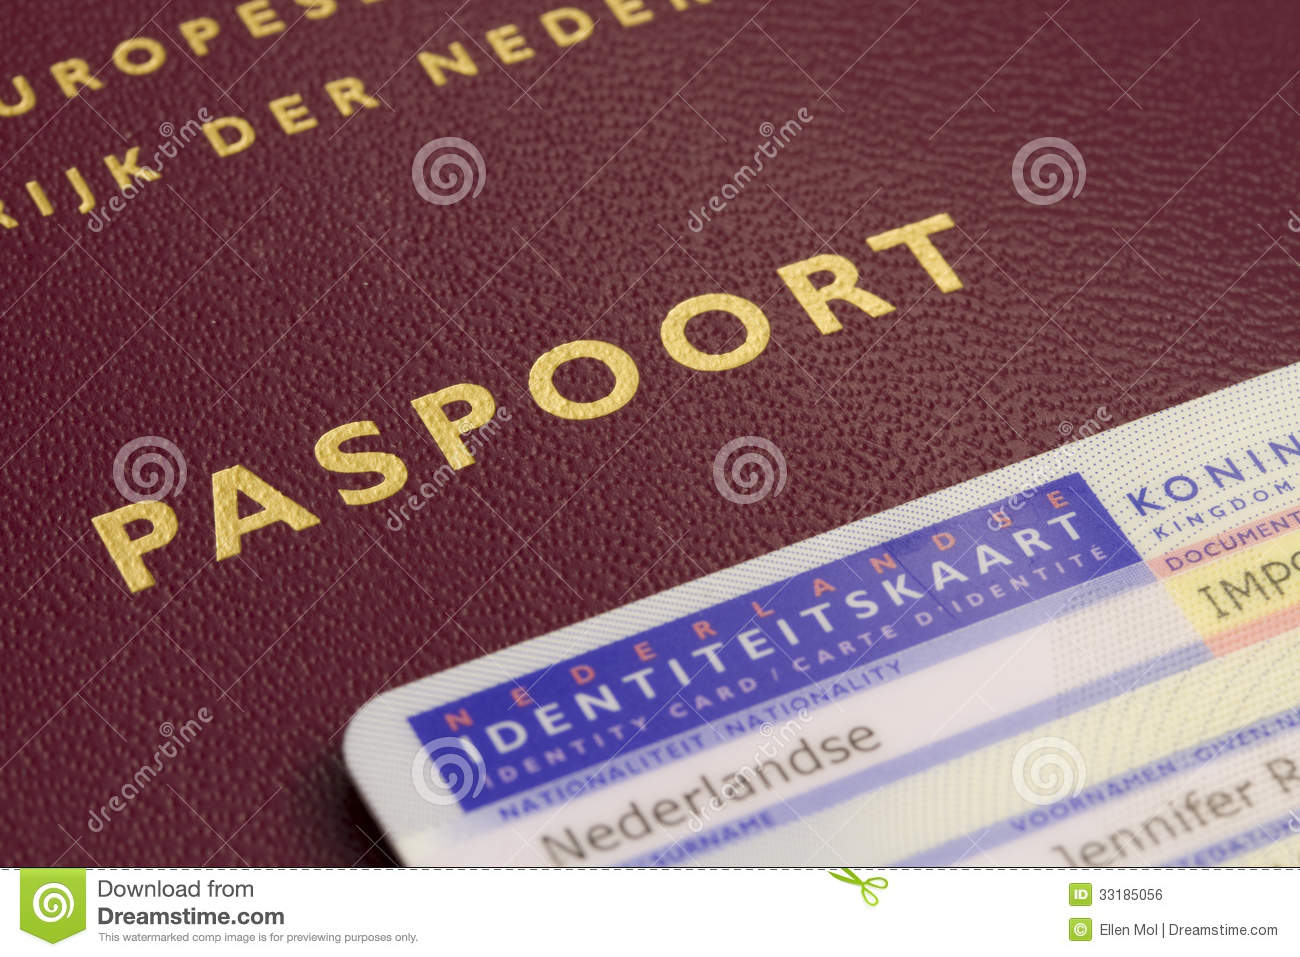 Dutch passport and id card royalty free stock image image 33185056 royalty free stock photo download dutch passport ccuart Choice Image